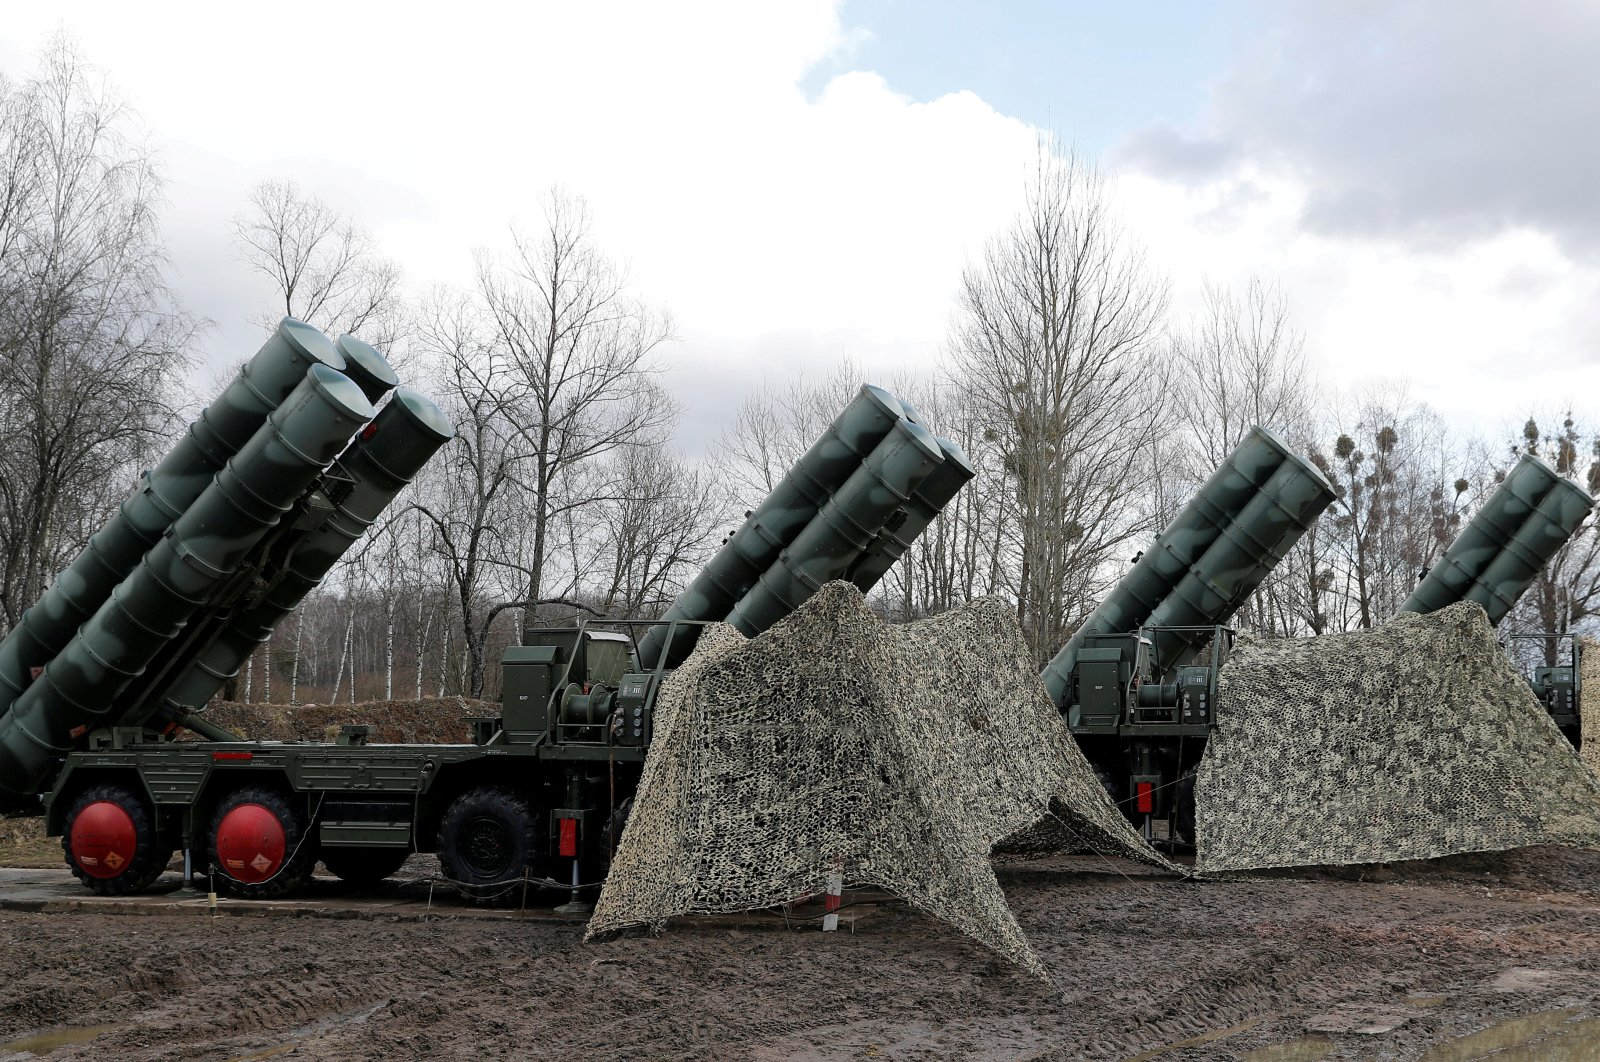 A S-400 surface-to-air missile system is seen after its deployment near Kaliningrad, Russia, March 11, 2019. (Reuters Photo)